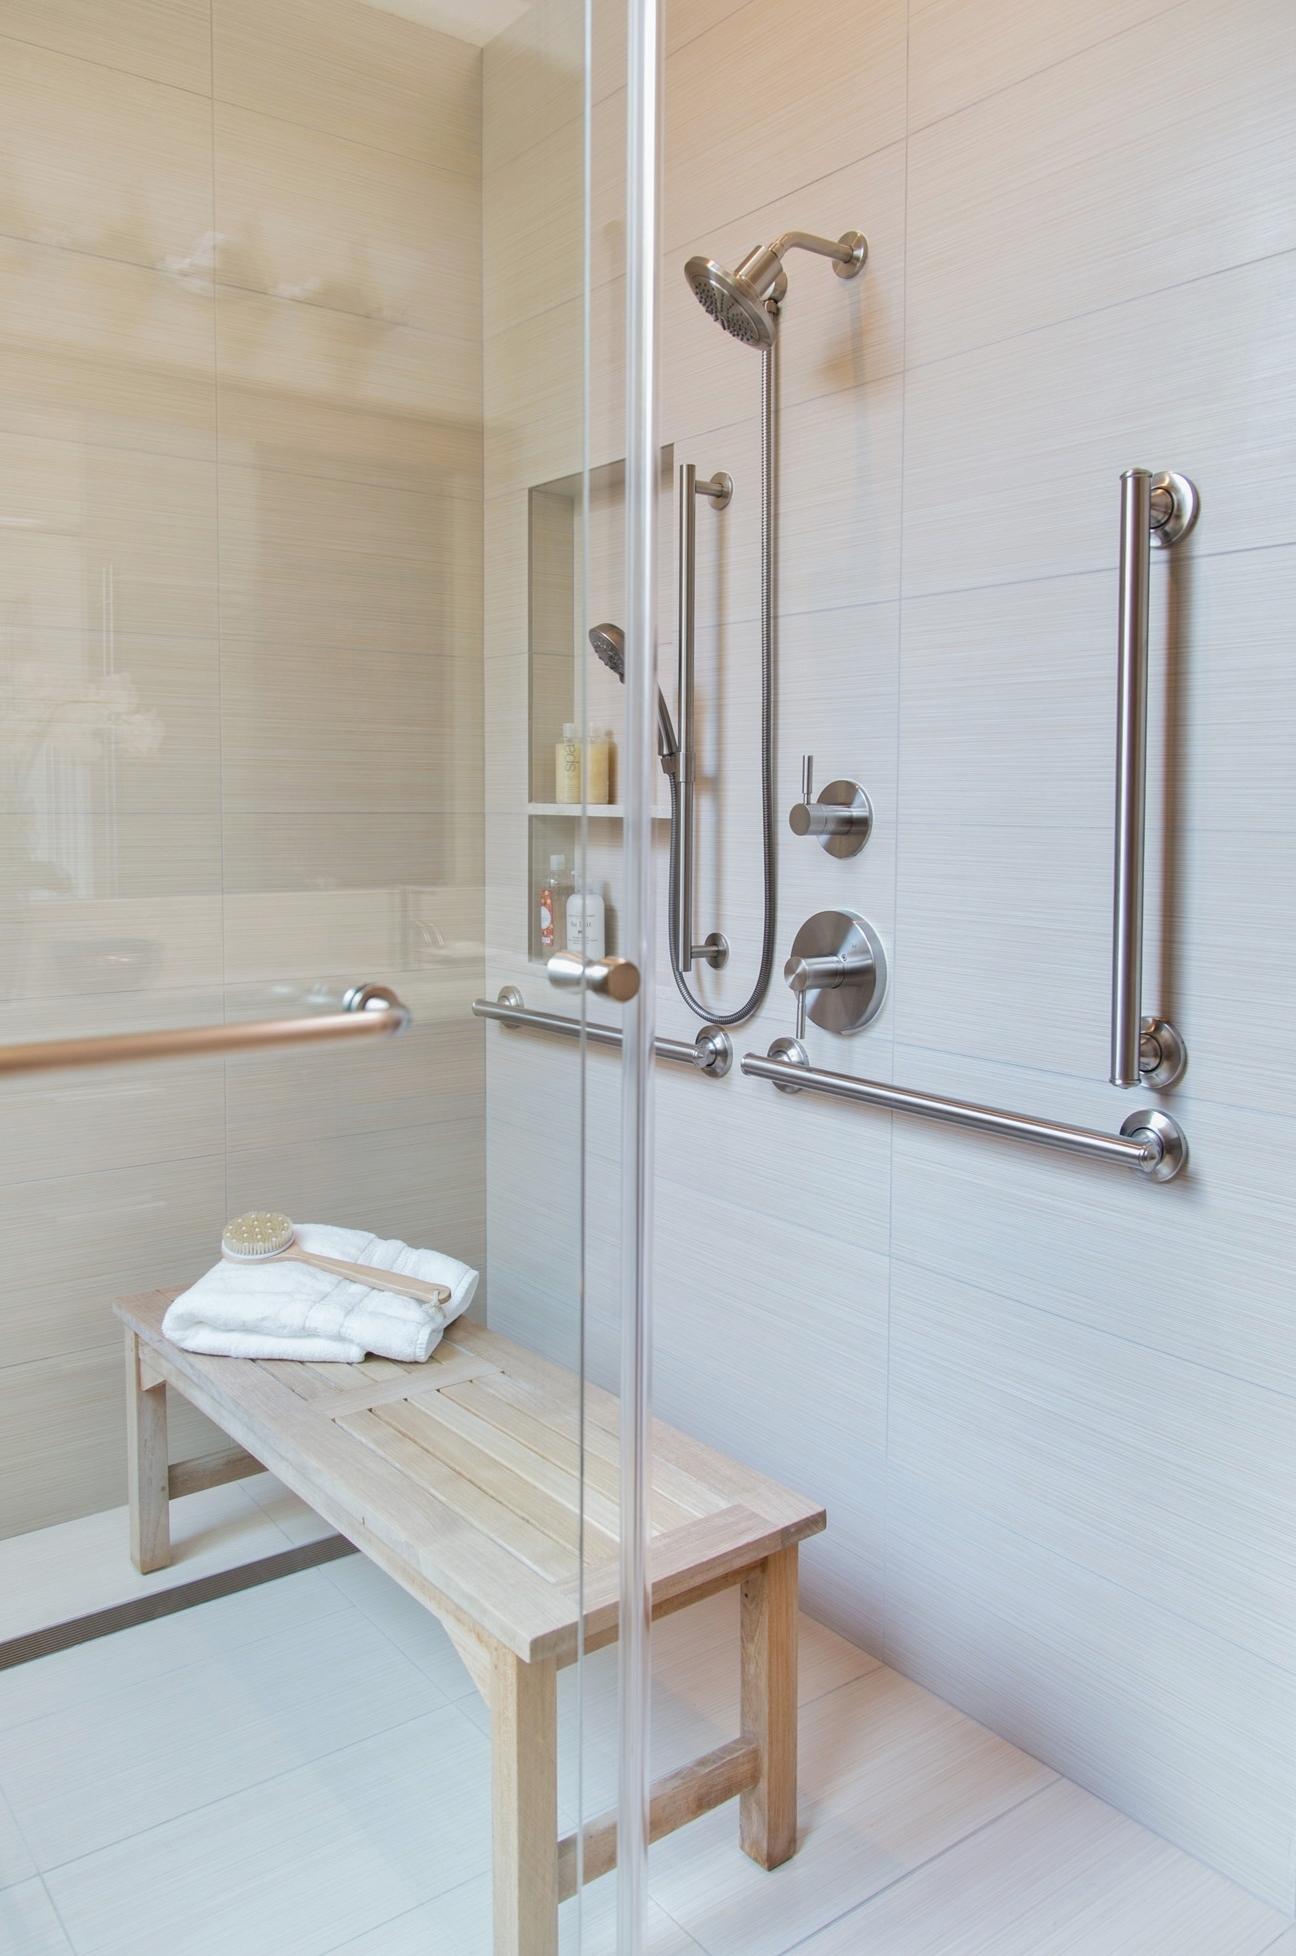 Bathroom designed for safety, ease of use while sitting, and beauty with curbless shower and grab bars. Carla Aston, Designer | Tori Aston, Photographer | #grabbars #bathroomdesign #aginginplace